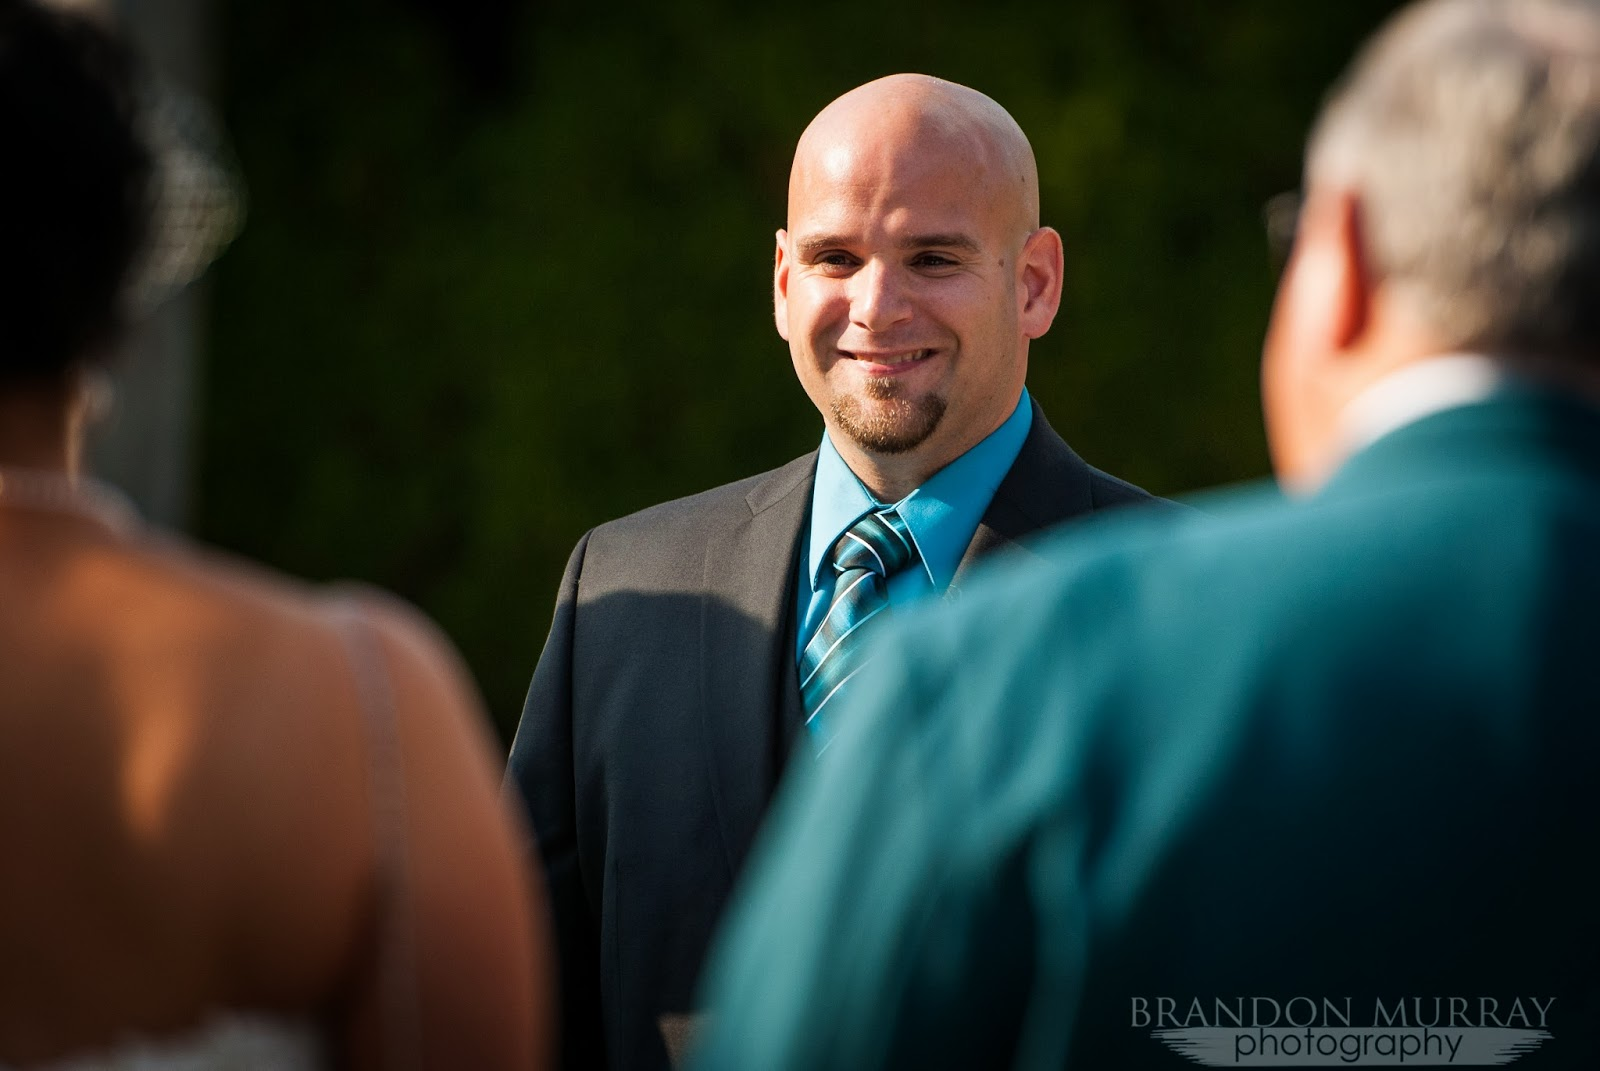 Brandon Murray Photography - North Jersey Event and Family ...